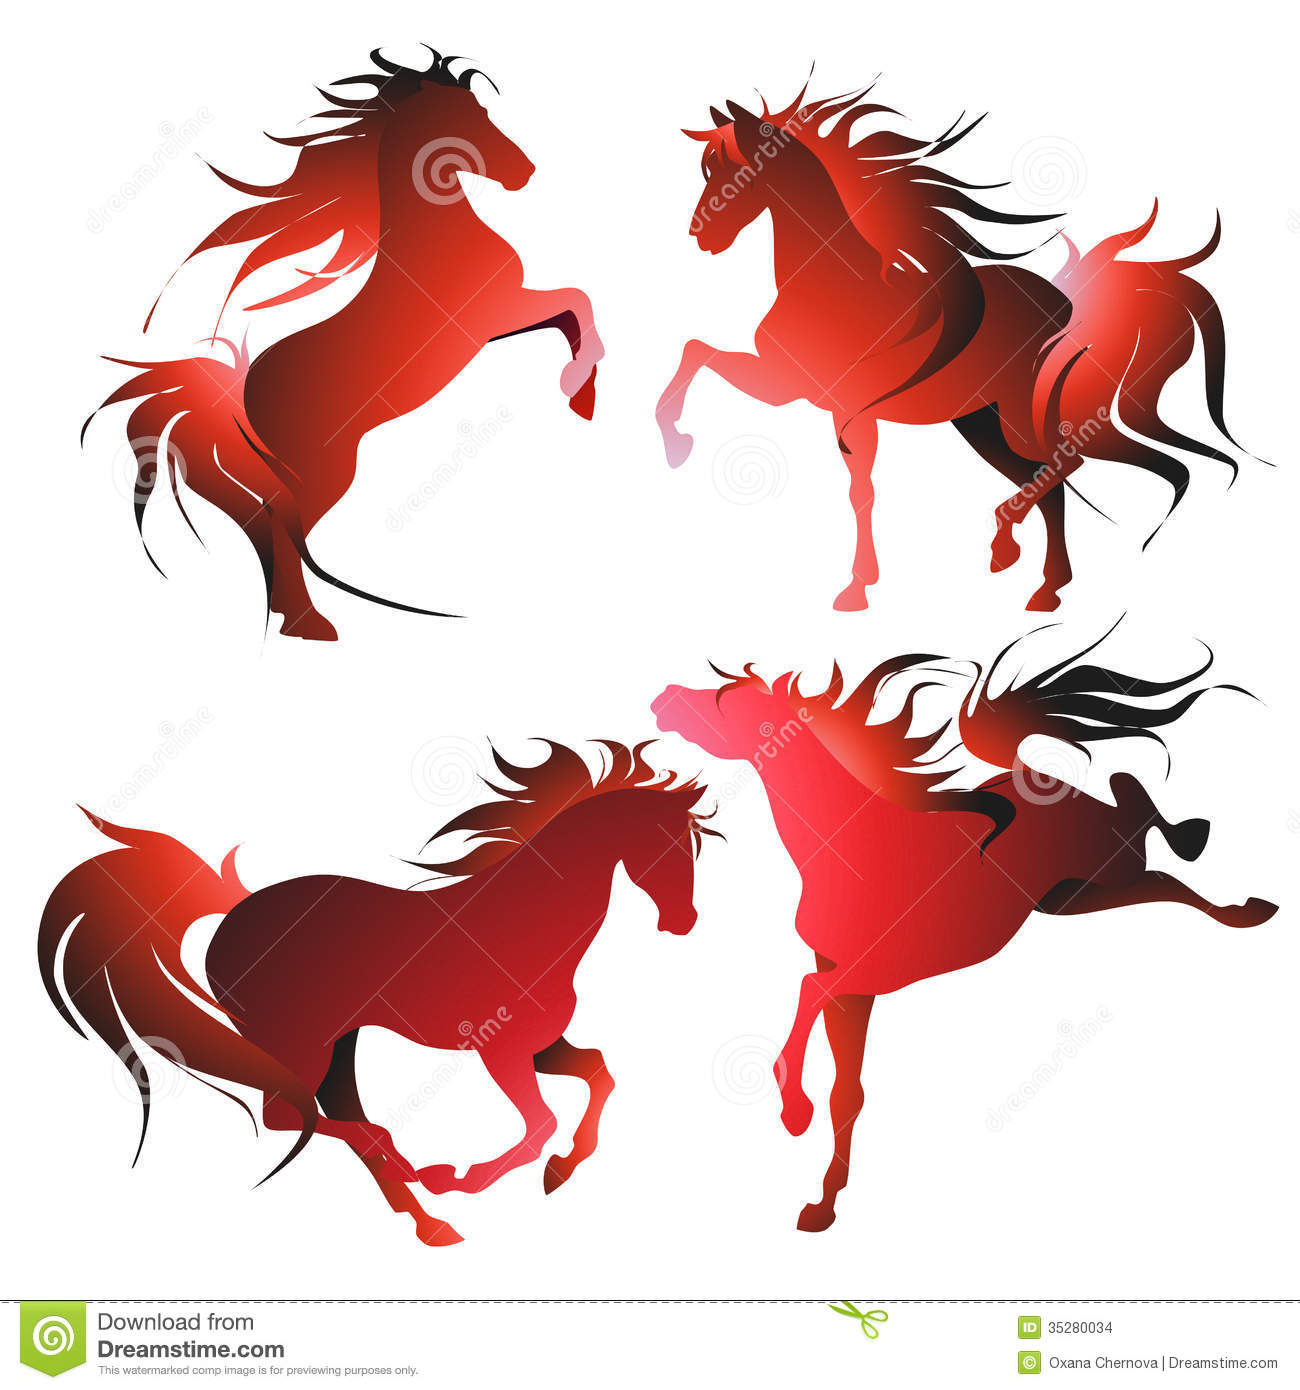 Four horses in the